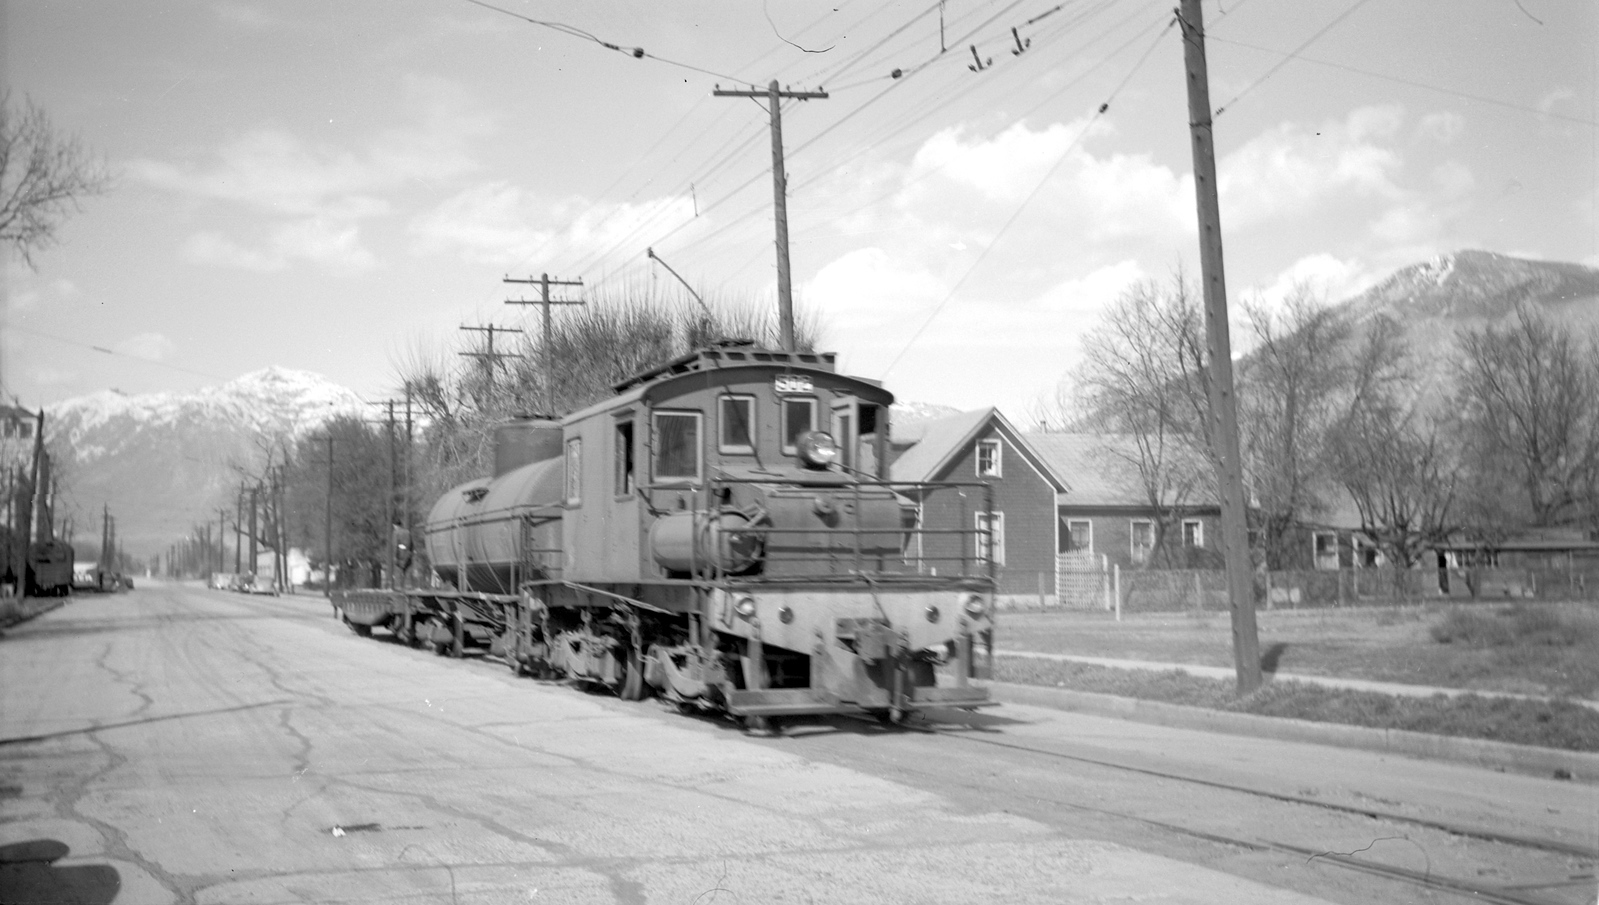 Bamberger_502-with-train_Bountiful_no-date_Gordon-Cardall-photo